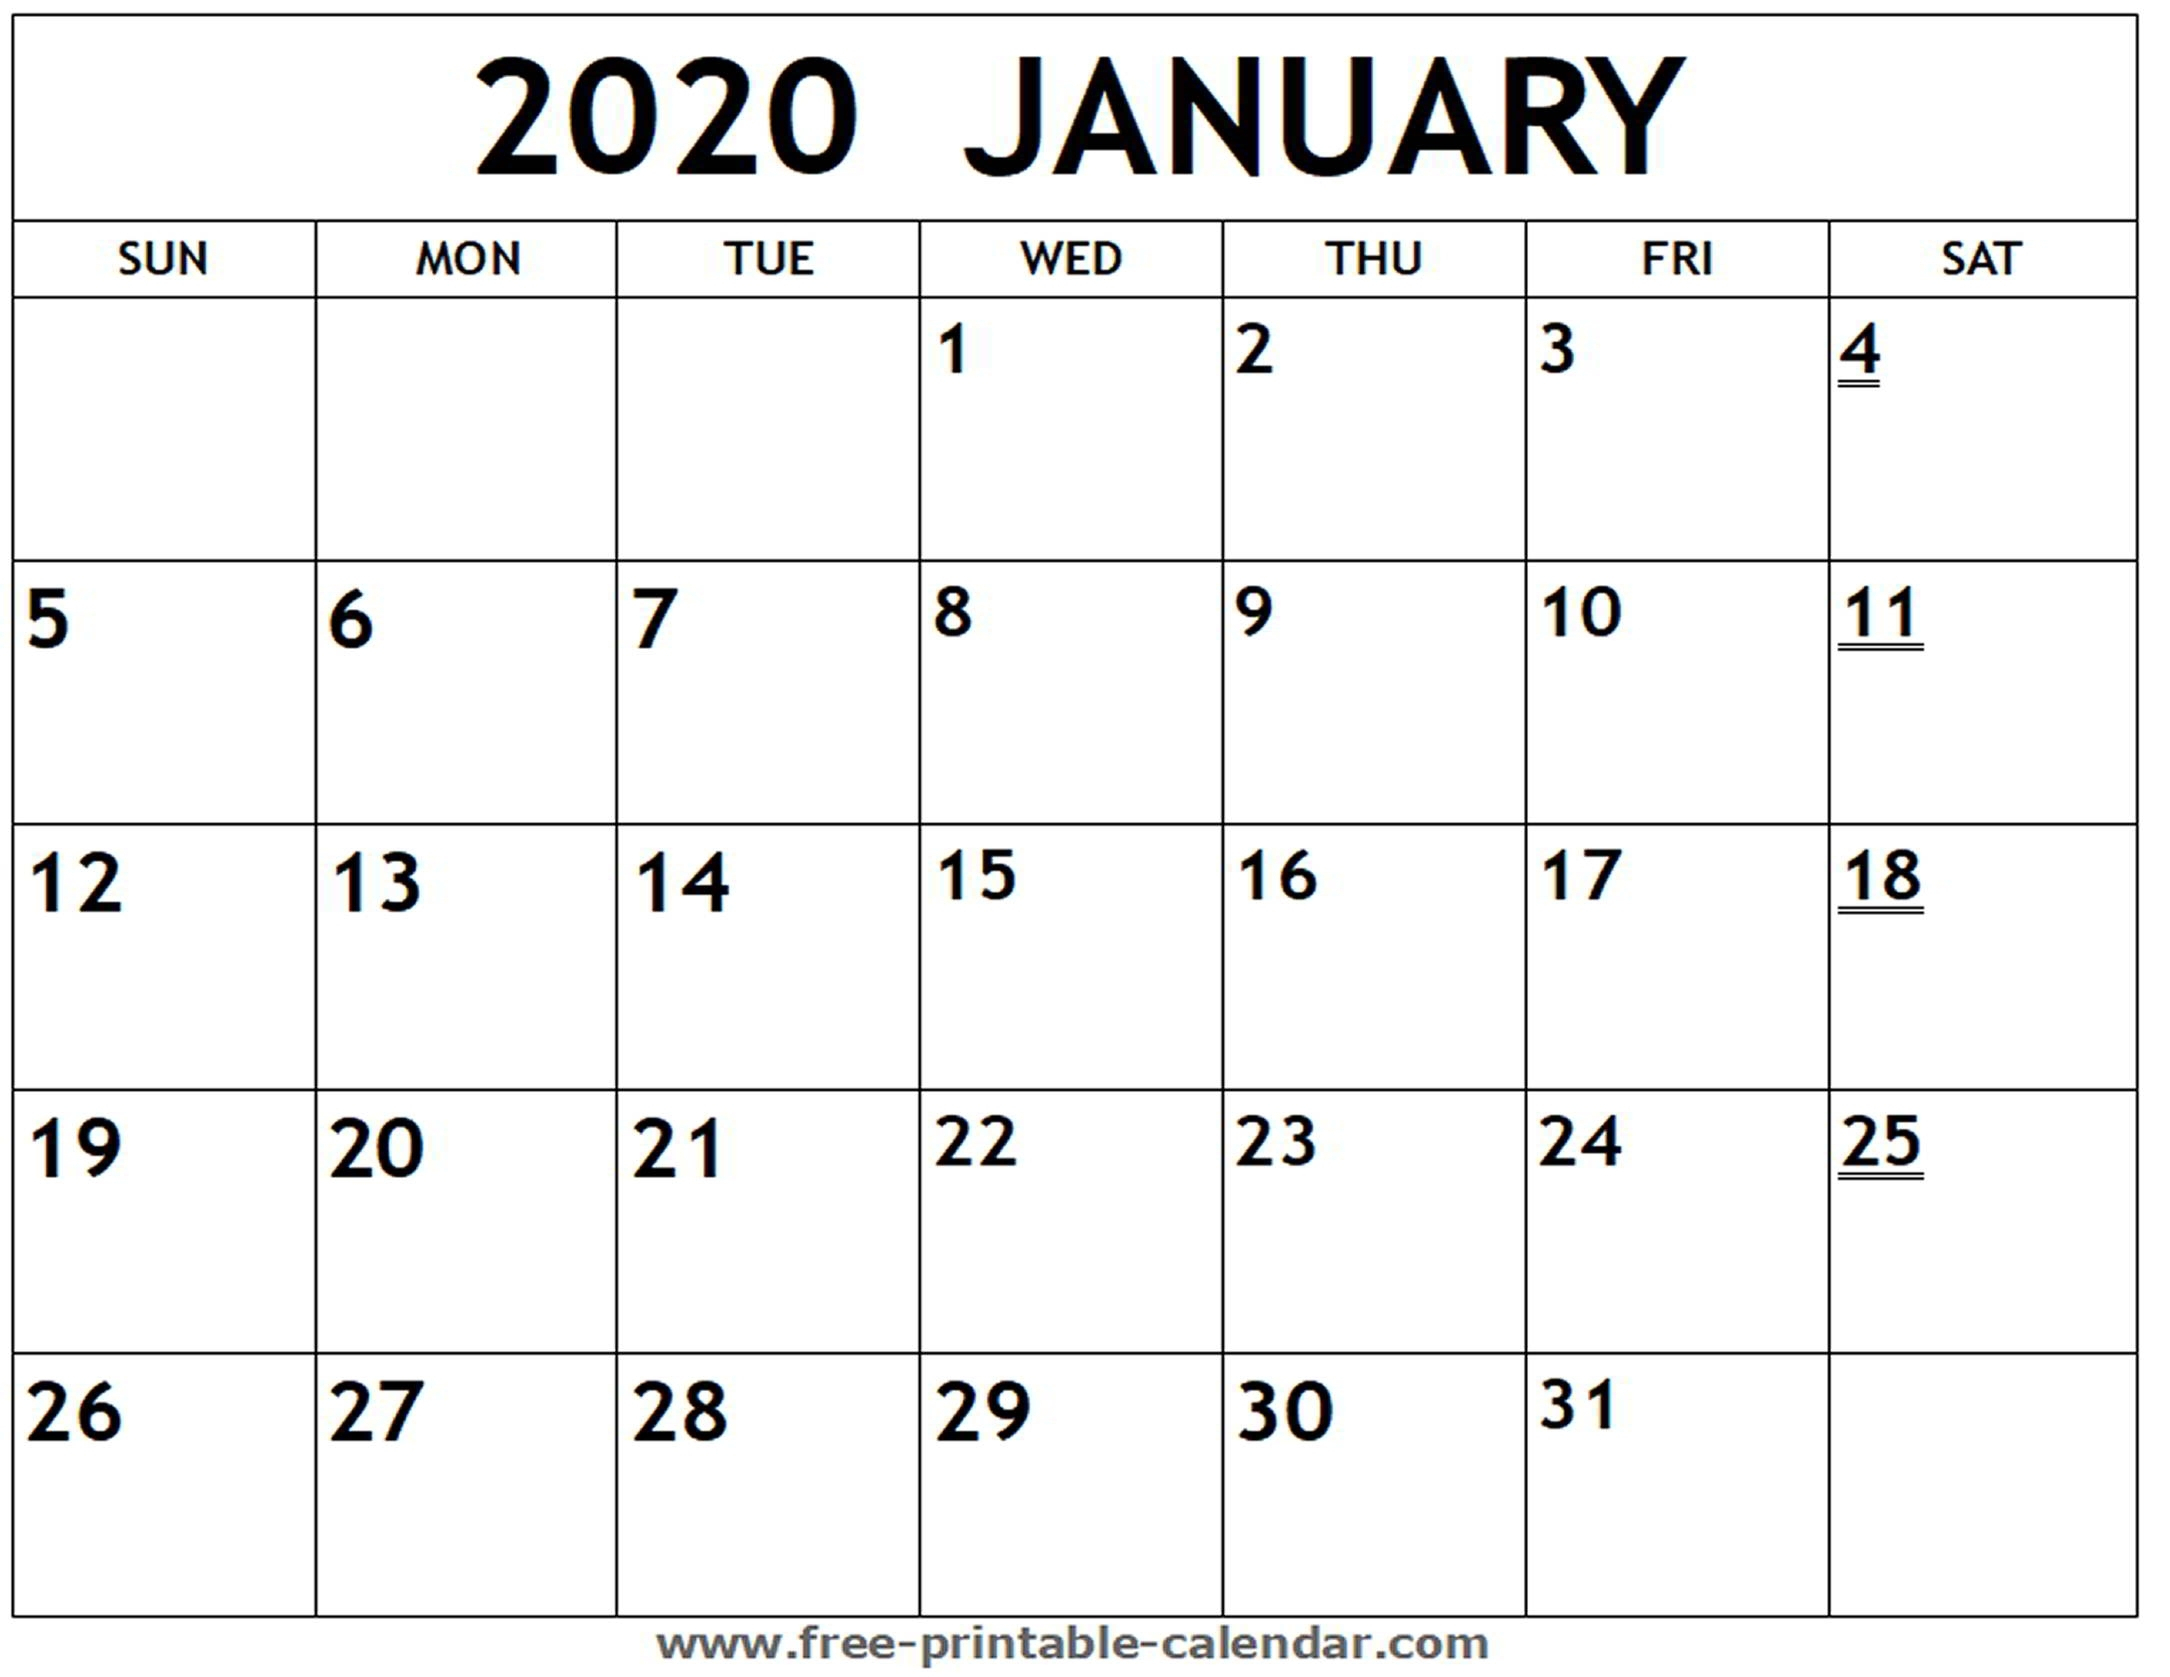 Monthly Calendar Printable 2020 Monday Start | Monthly